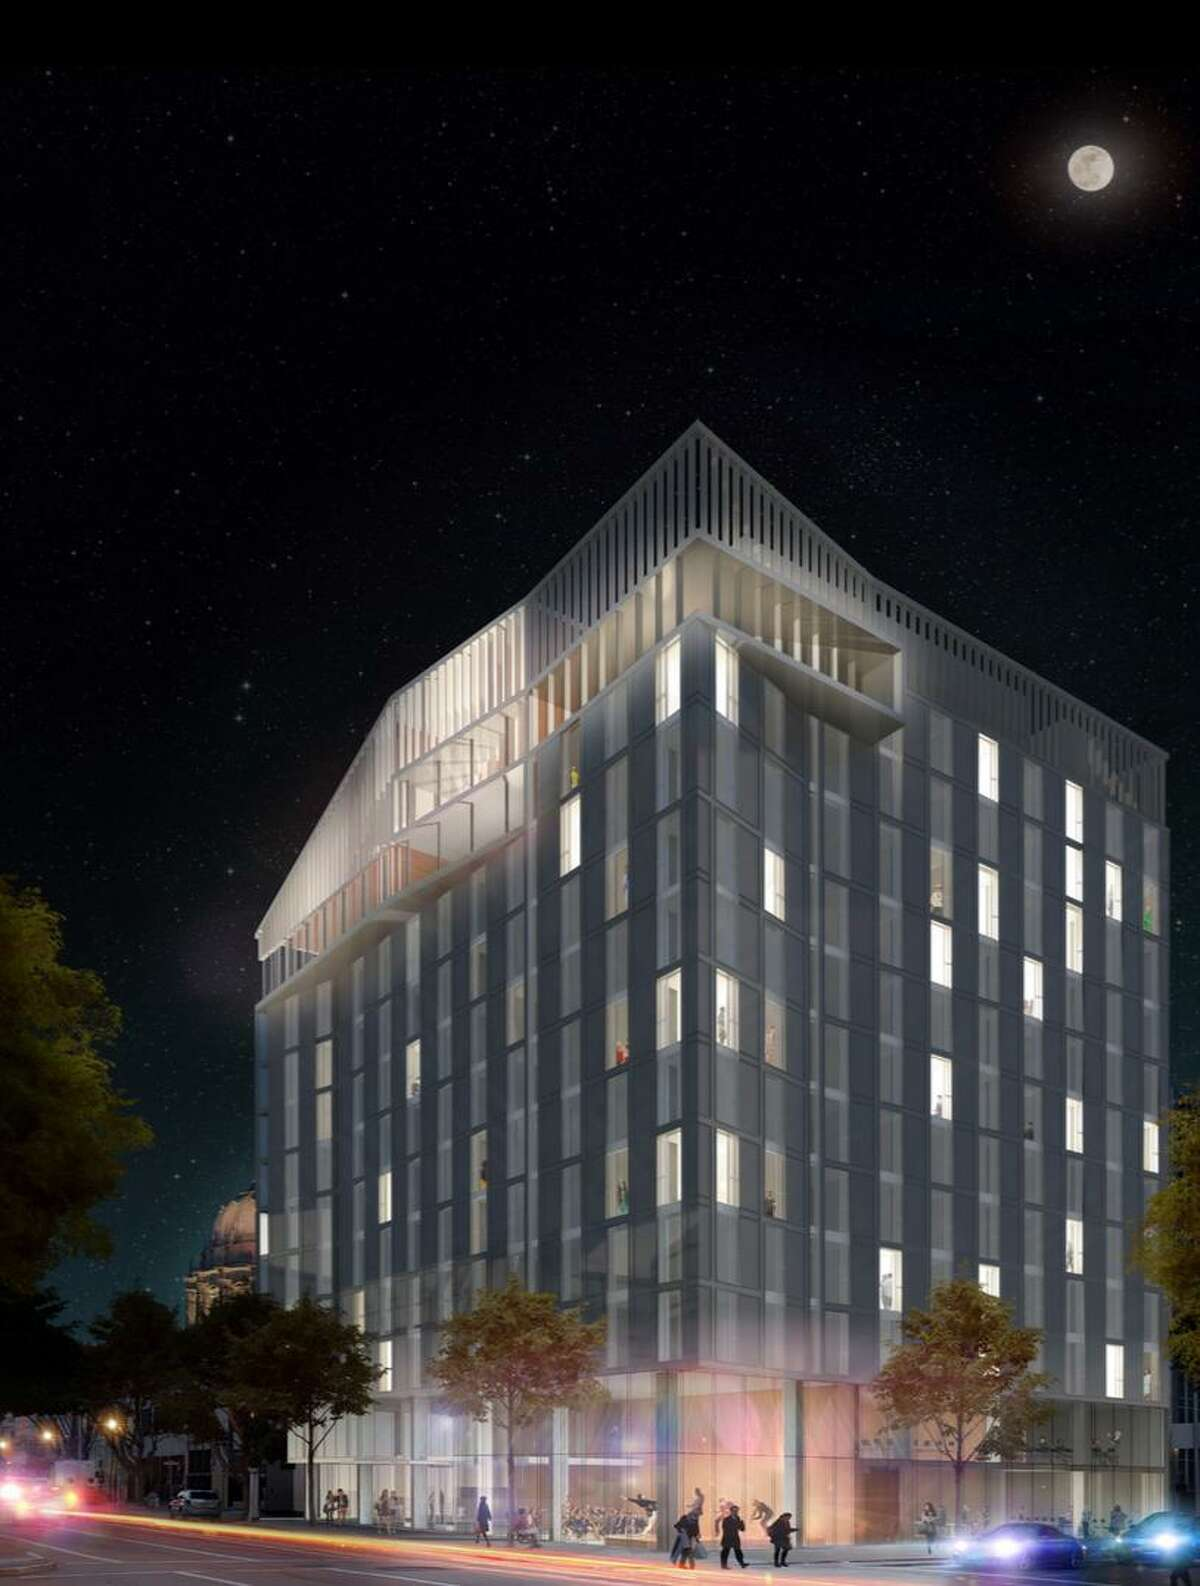 Cavagnero's firm is working on the 12-story building for the San Francisco Conservatory of Music seen in this rendering.